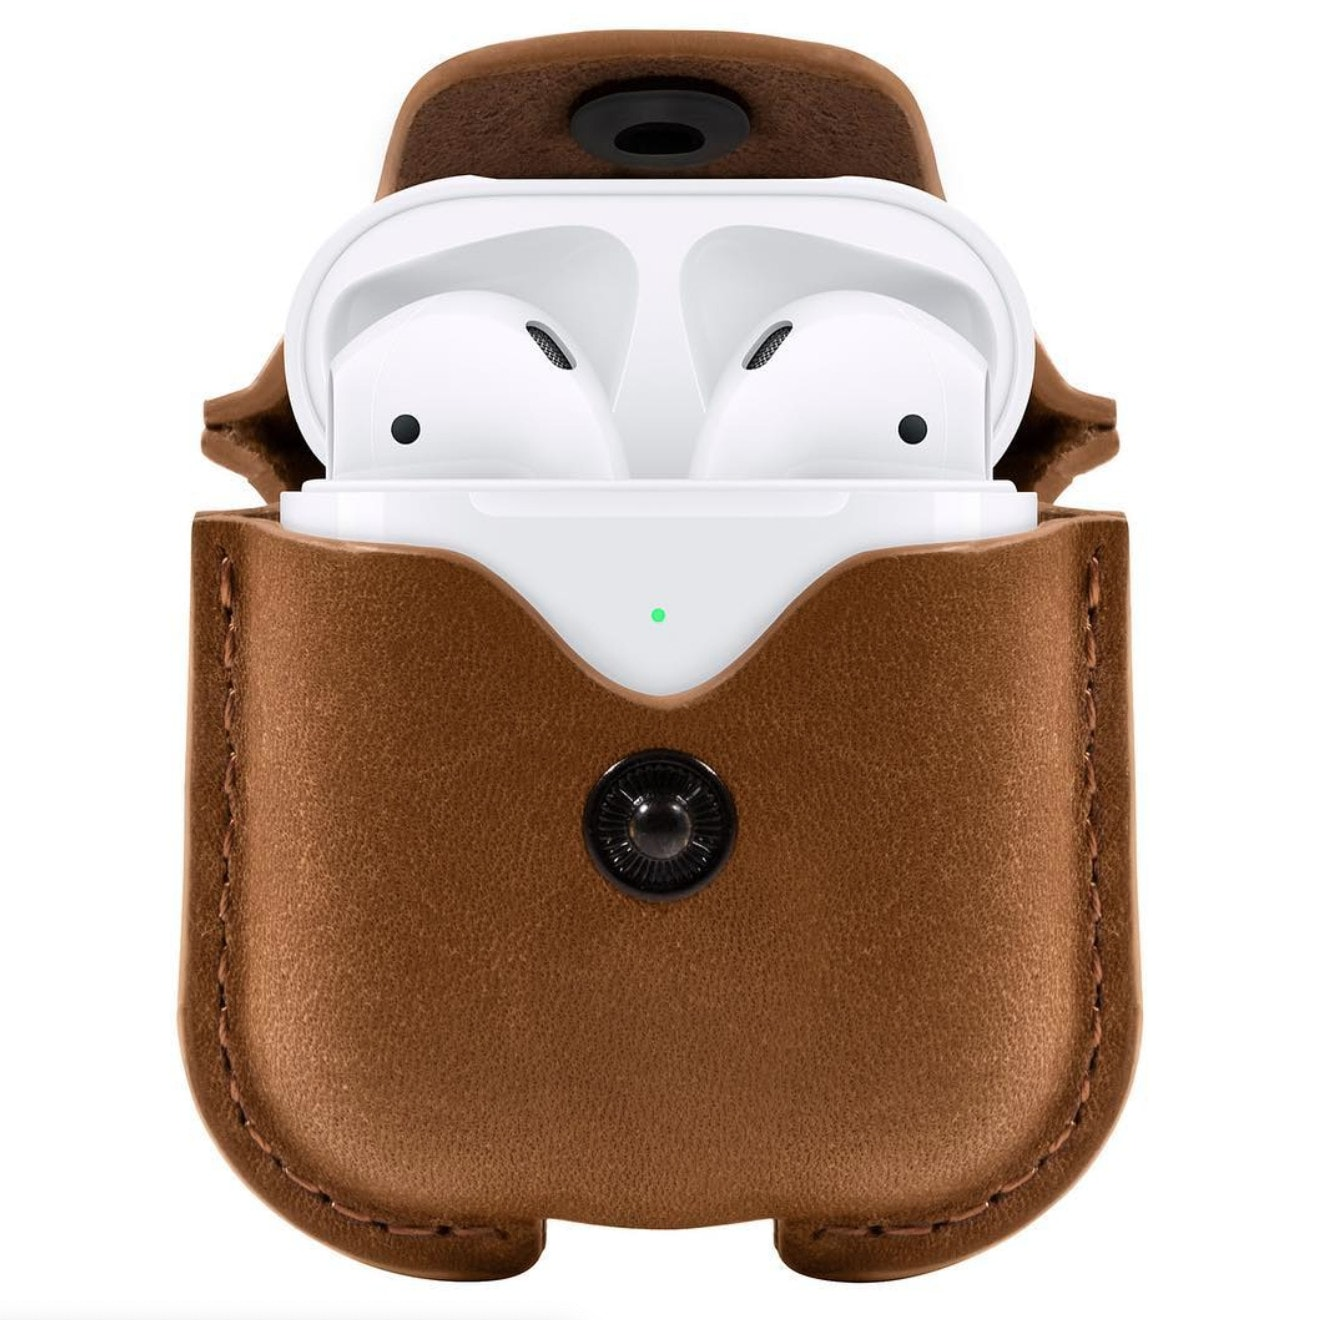 AirSnap protects both your AirPods and charging case from getting nicked, but it also shields them from scratches, dirt, and drops while floating around your desk, computer bag, or purse.